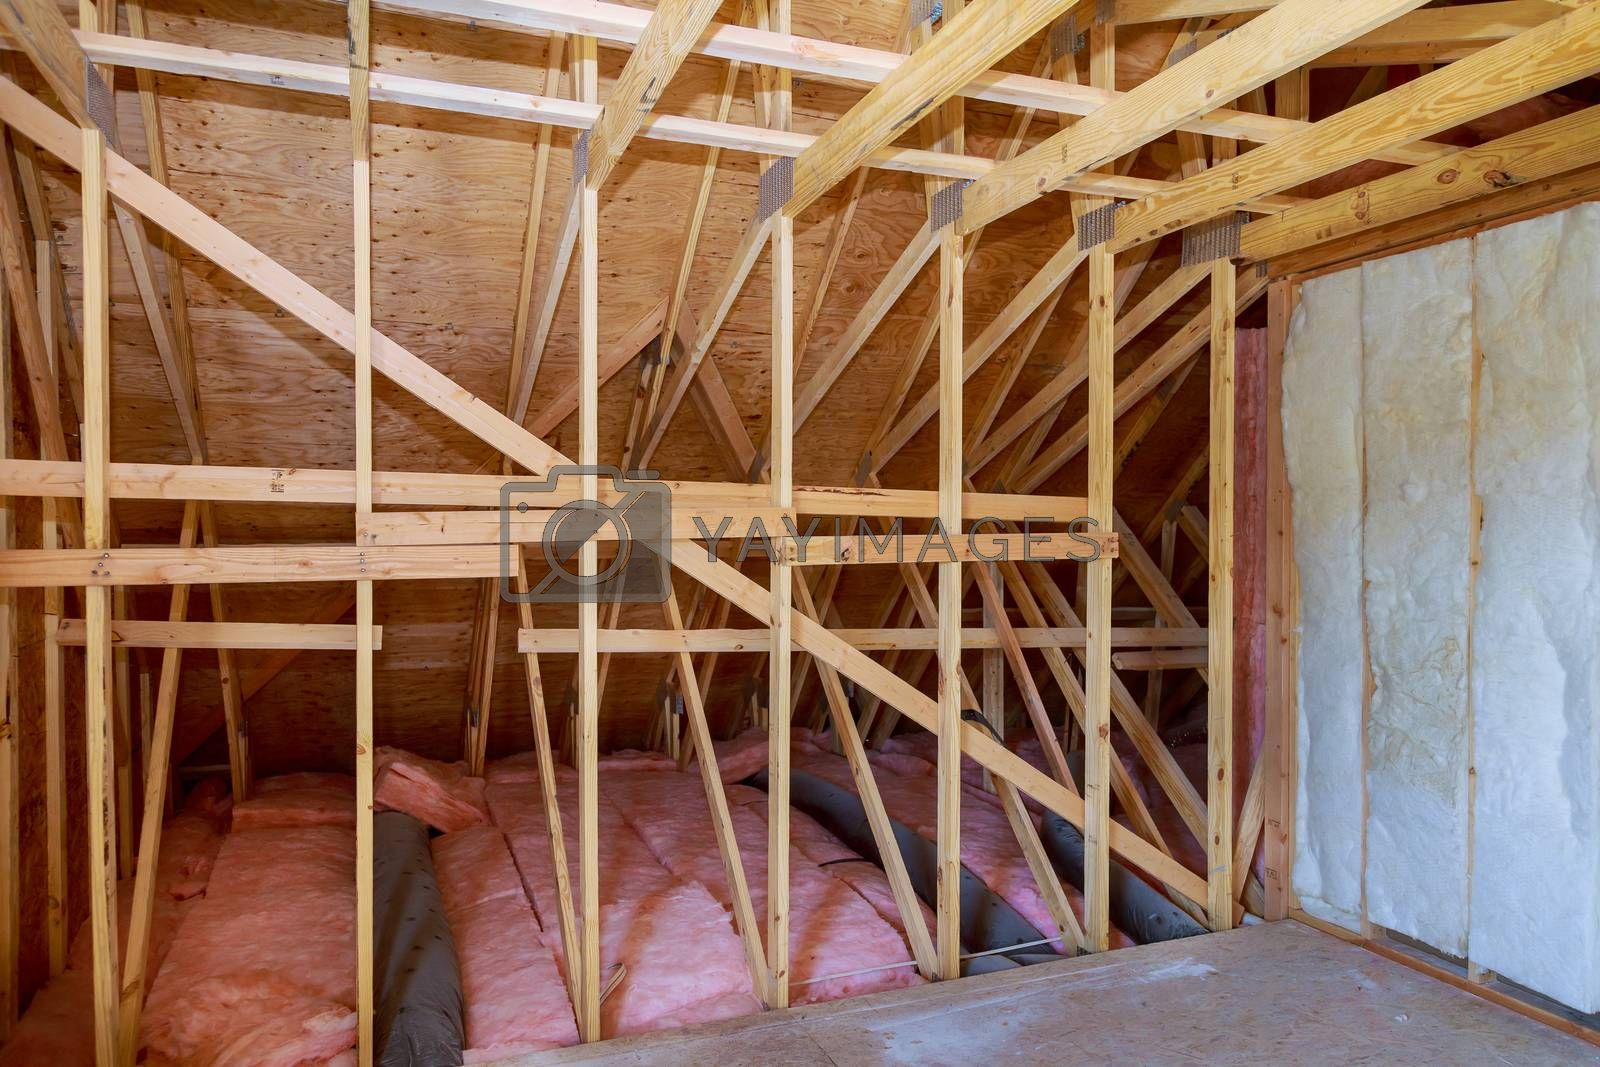 Fiberglass cold barrier insulation material in the sloping attic of a new frame house